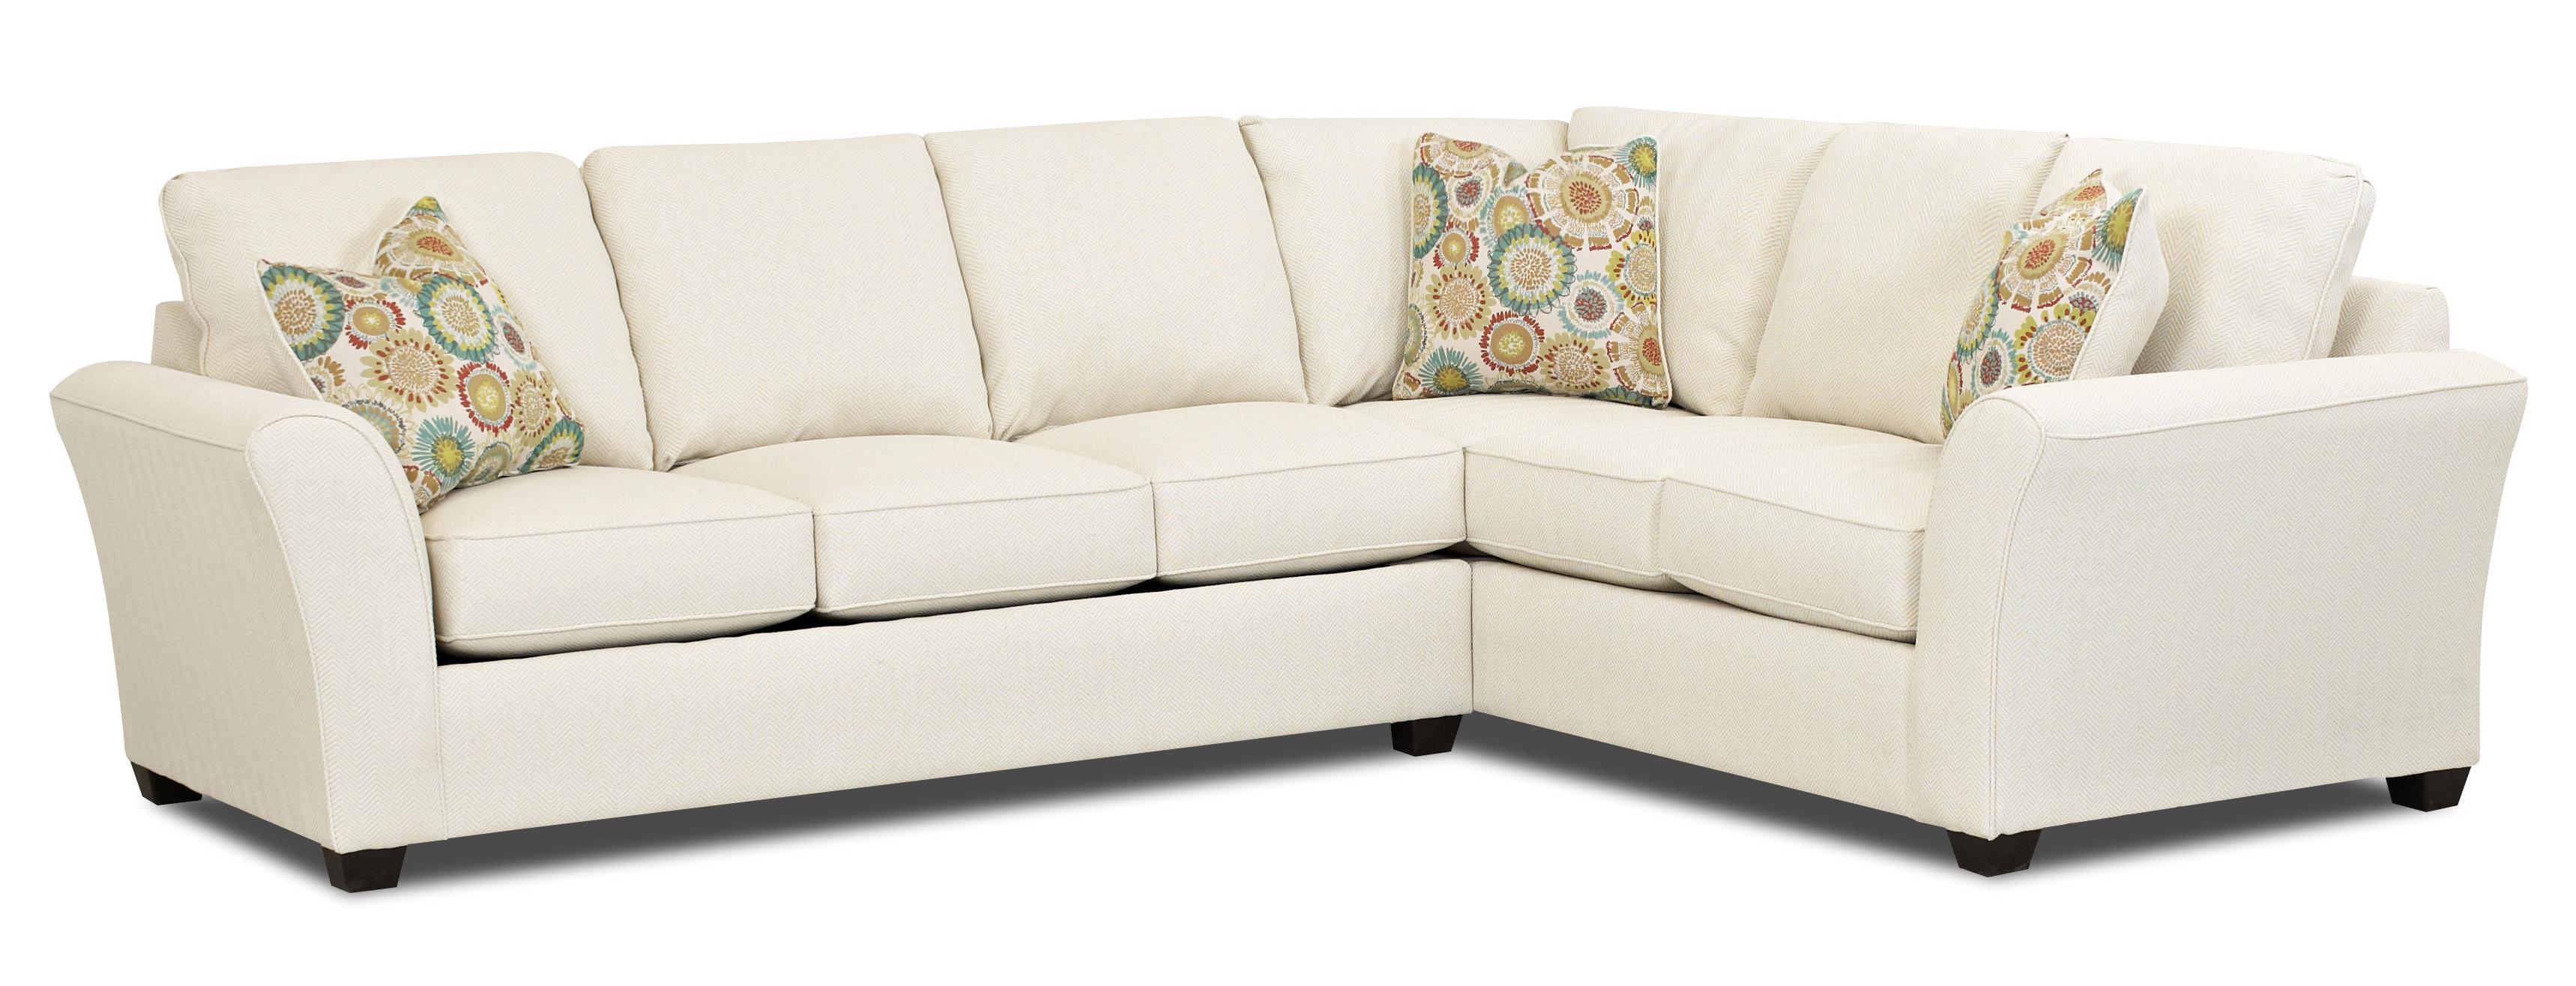 Sedgewick Transitional Sectional Sleeper Sofa With